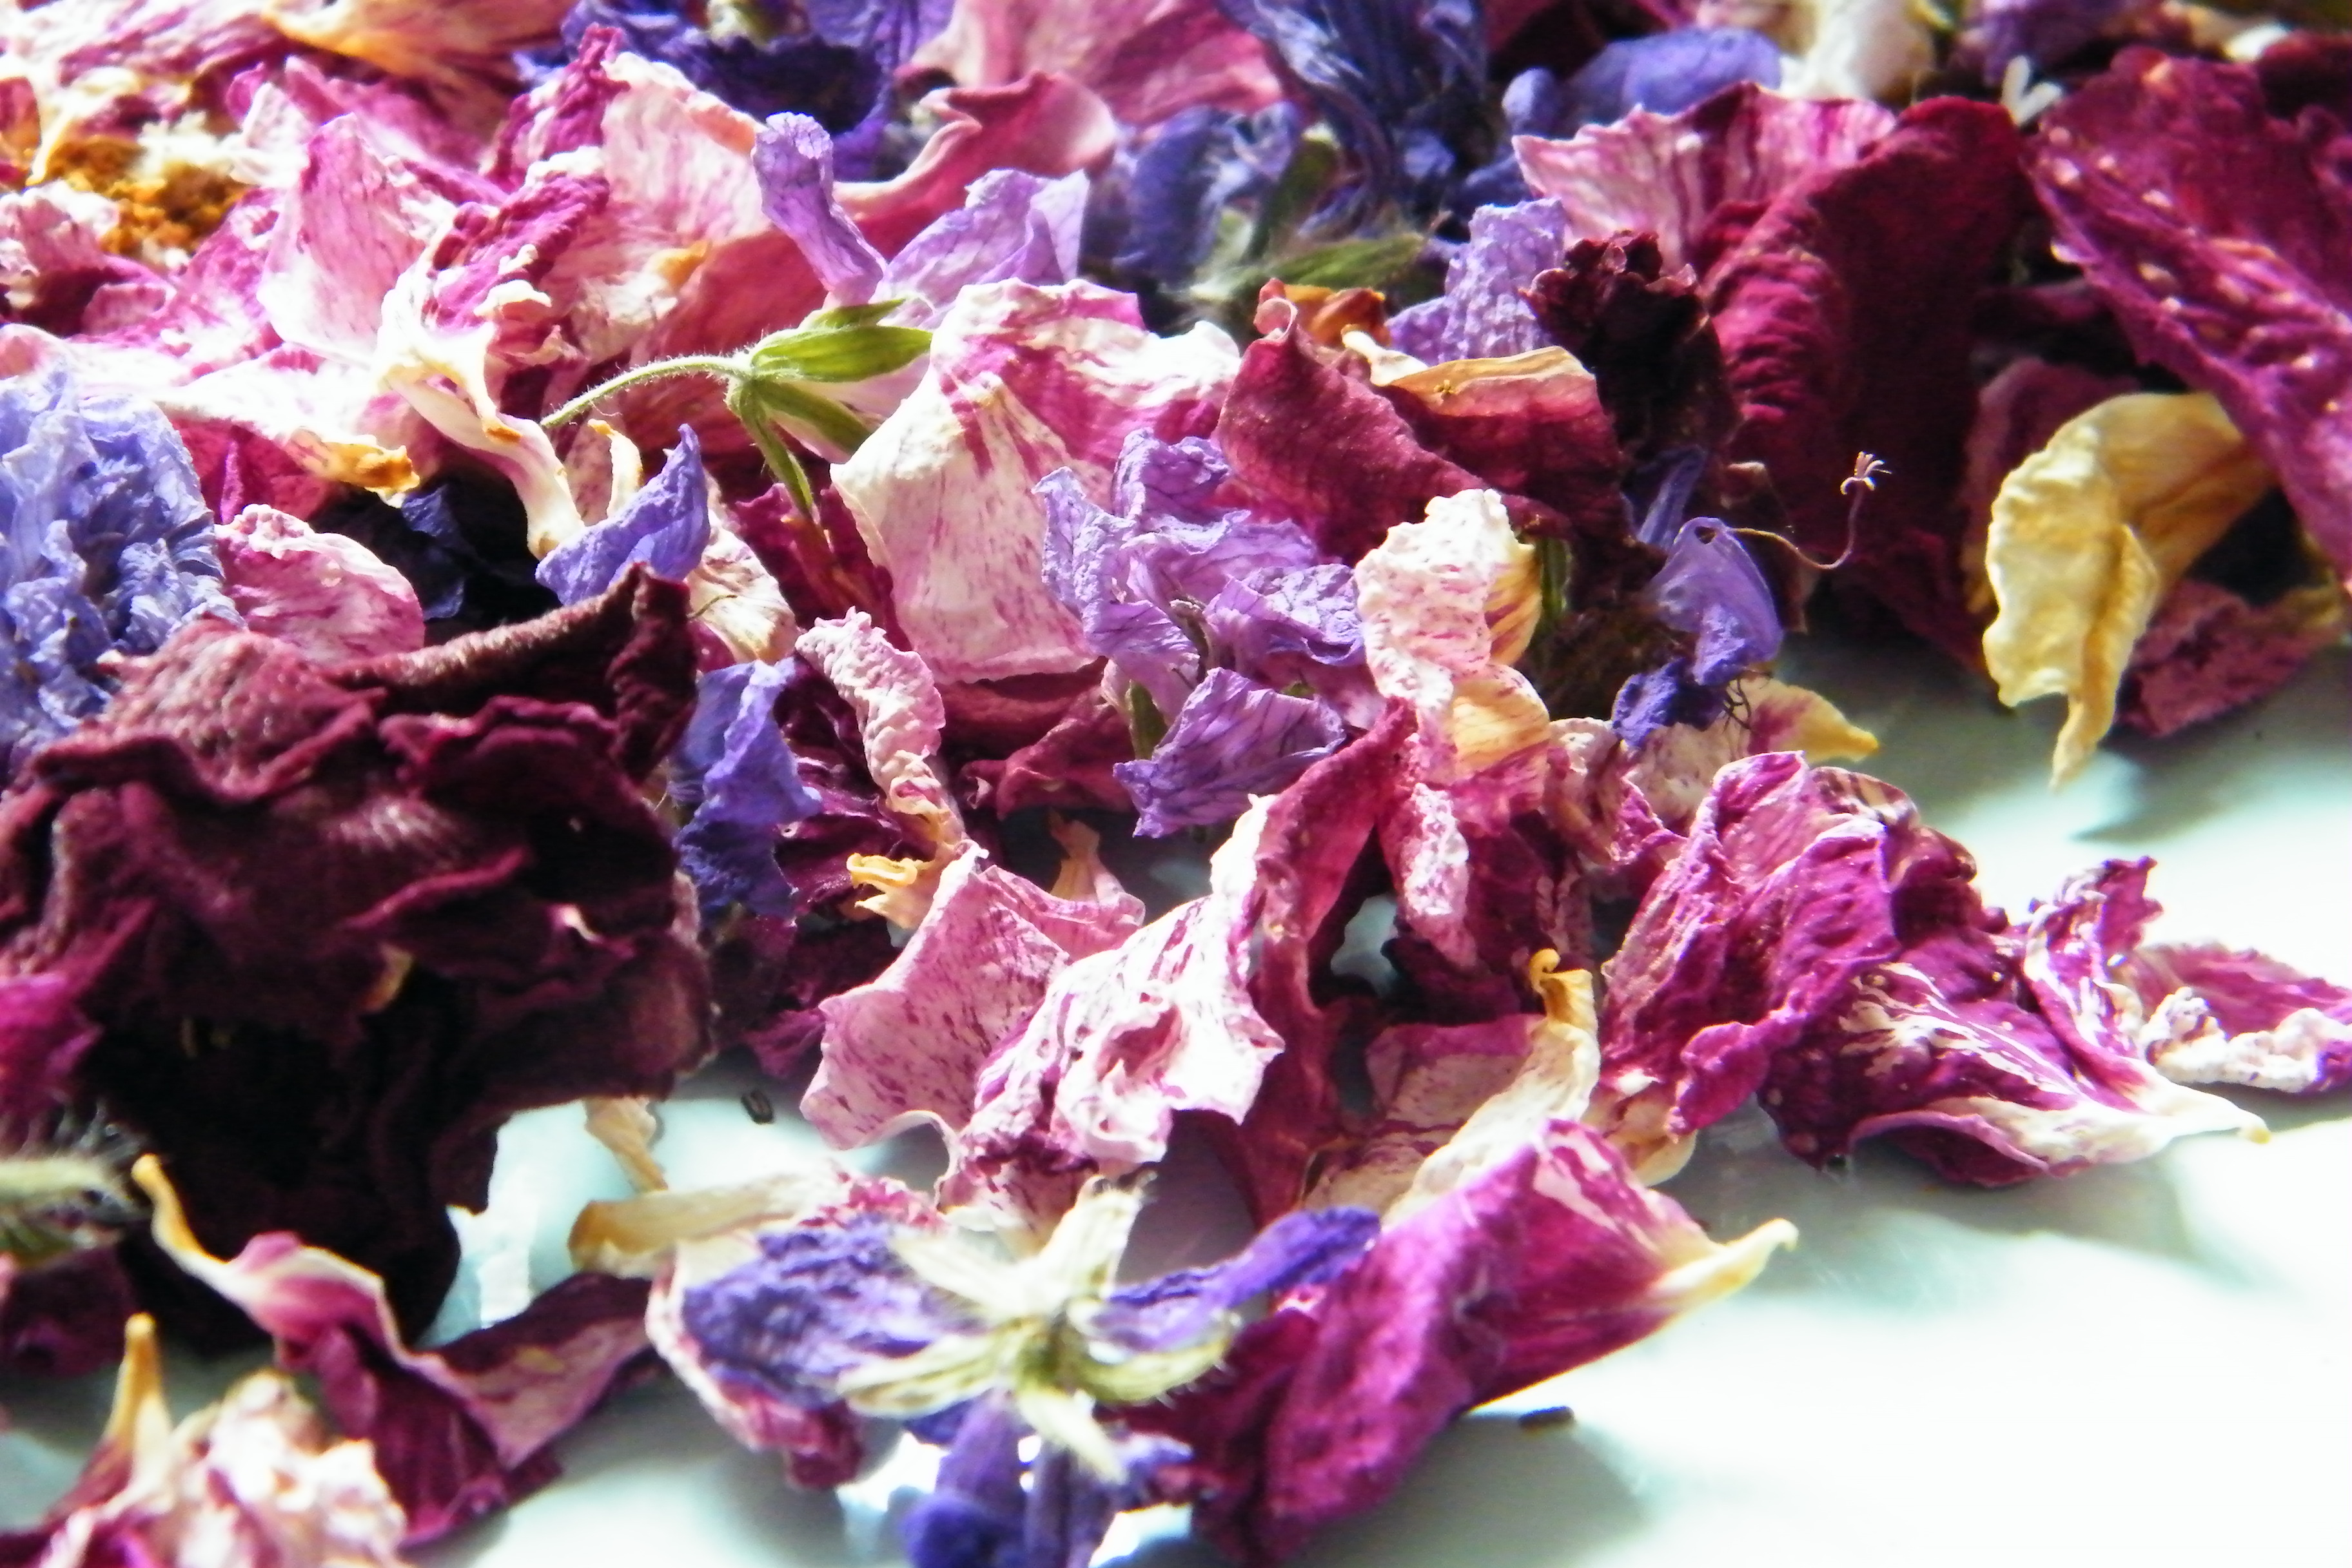 Dried natural flowers